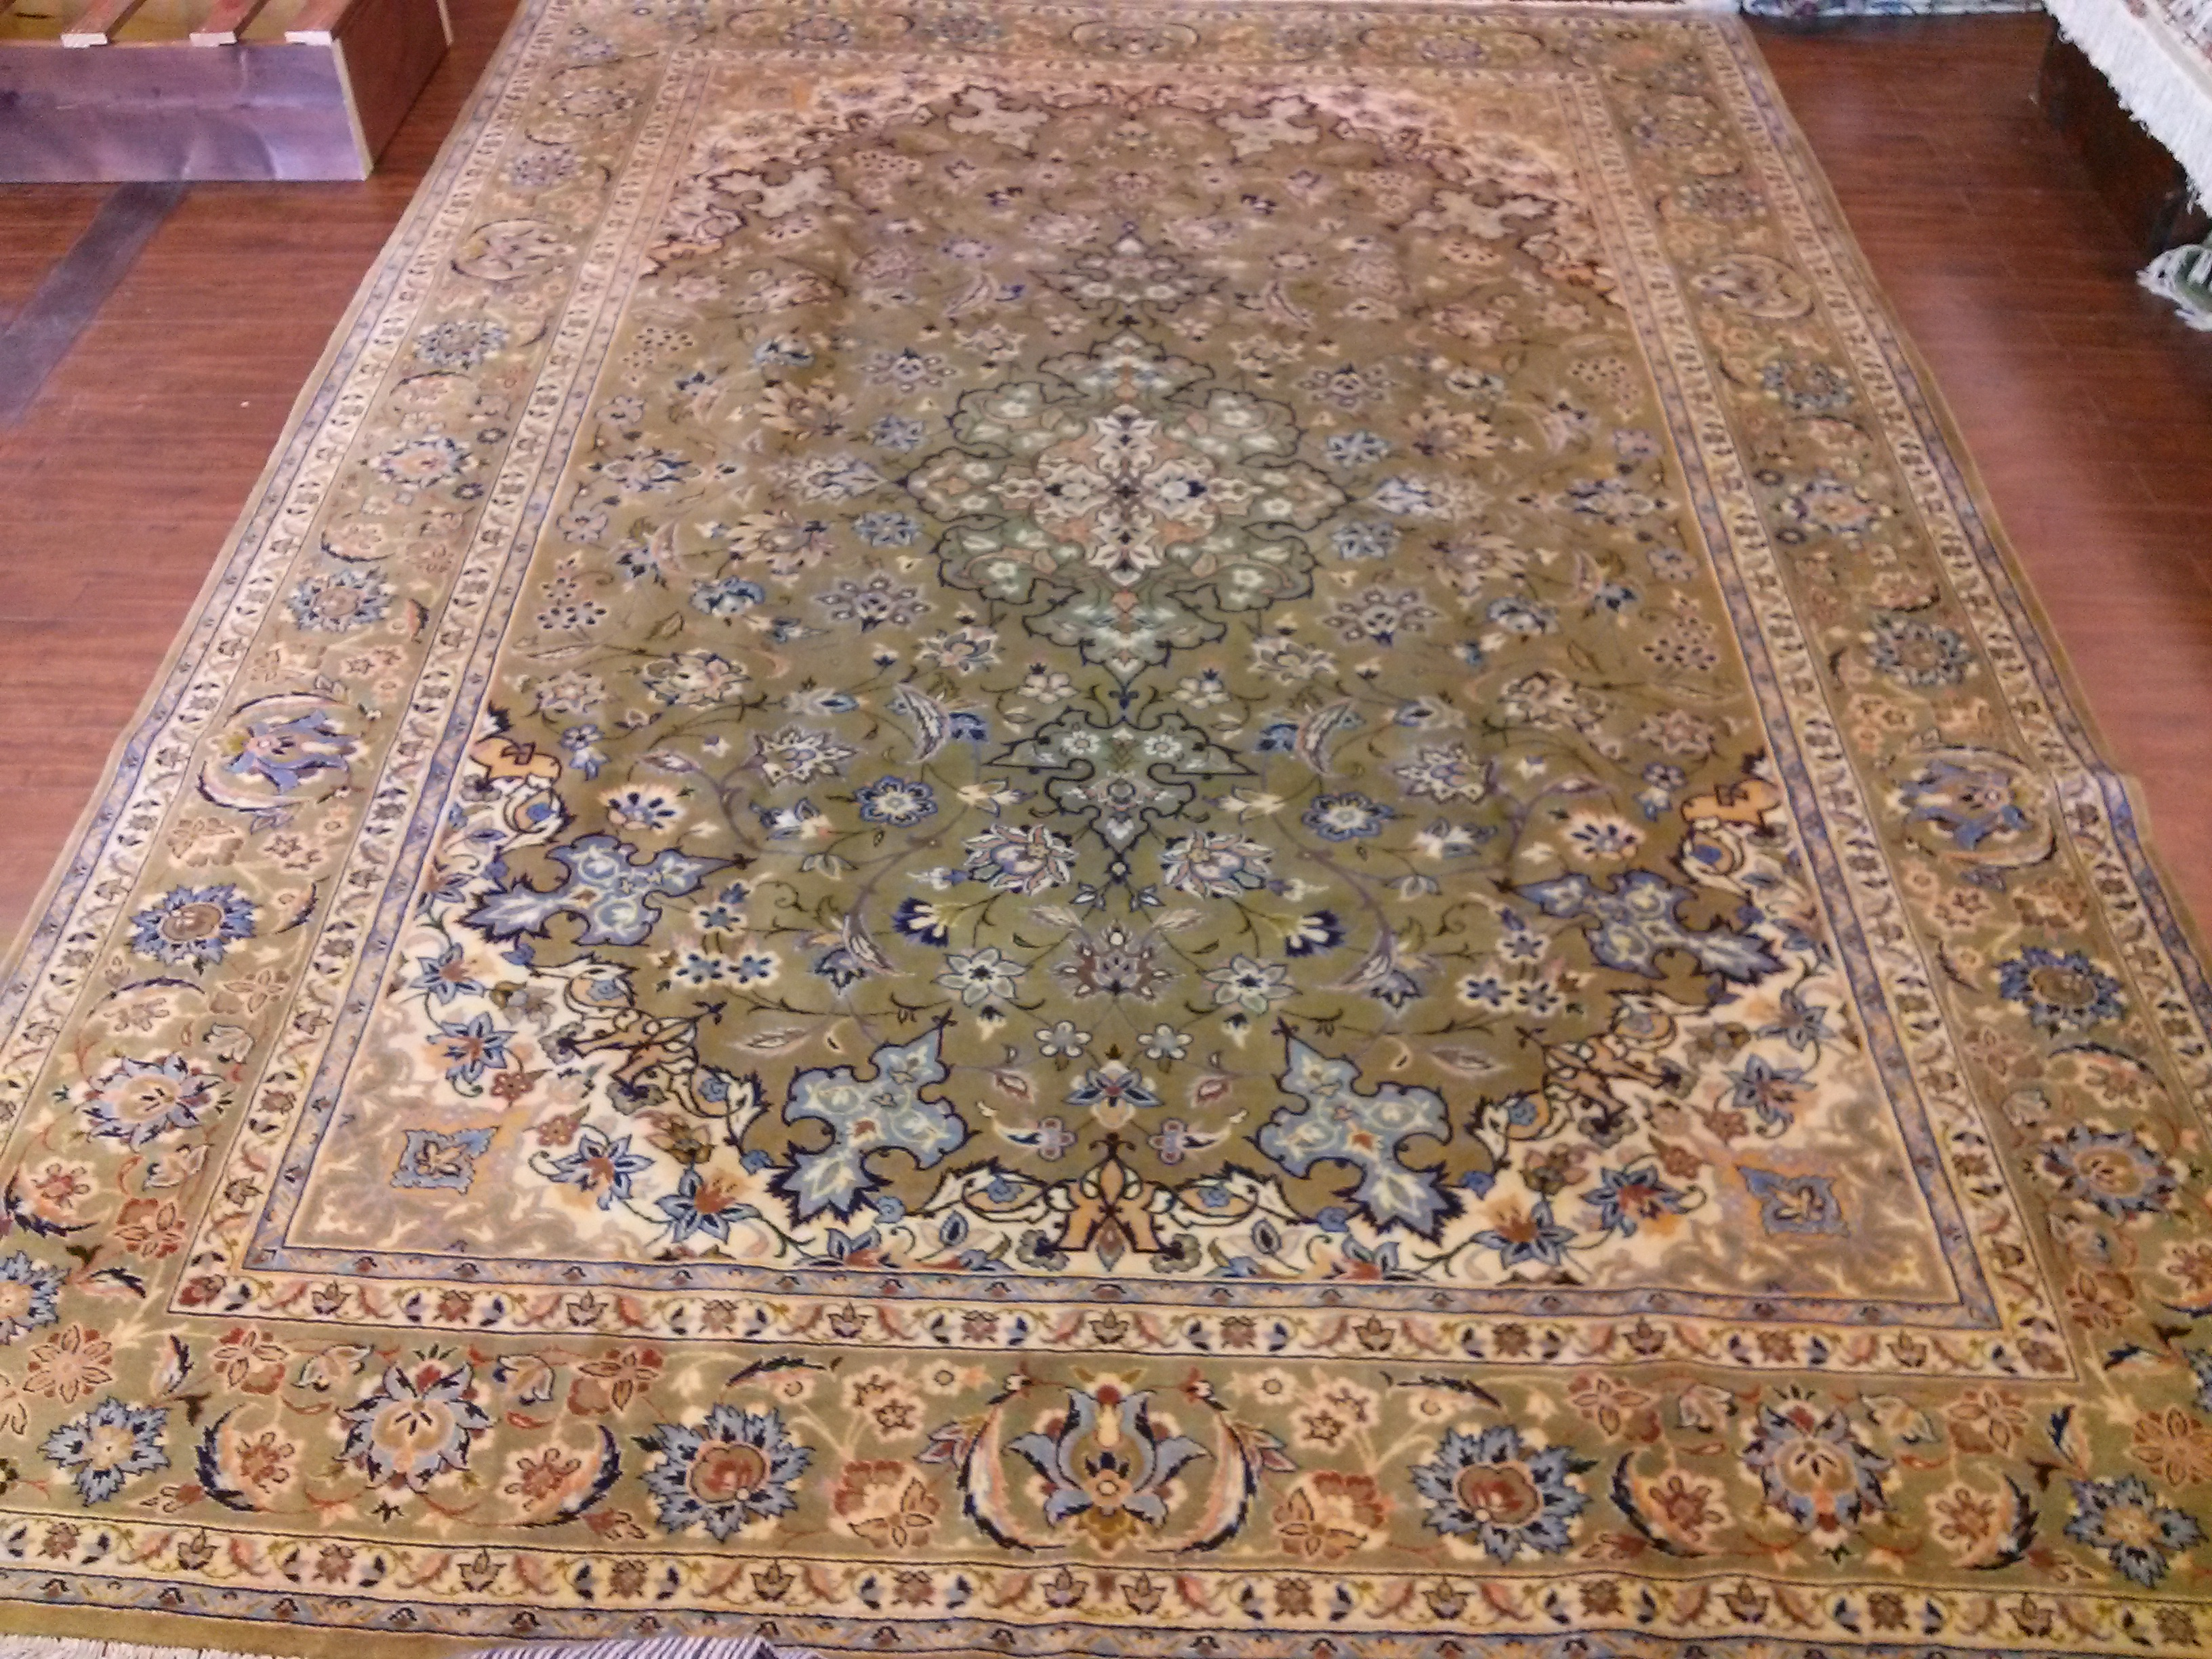 Taking Care Of Your Carpets And Area Rugs Persian